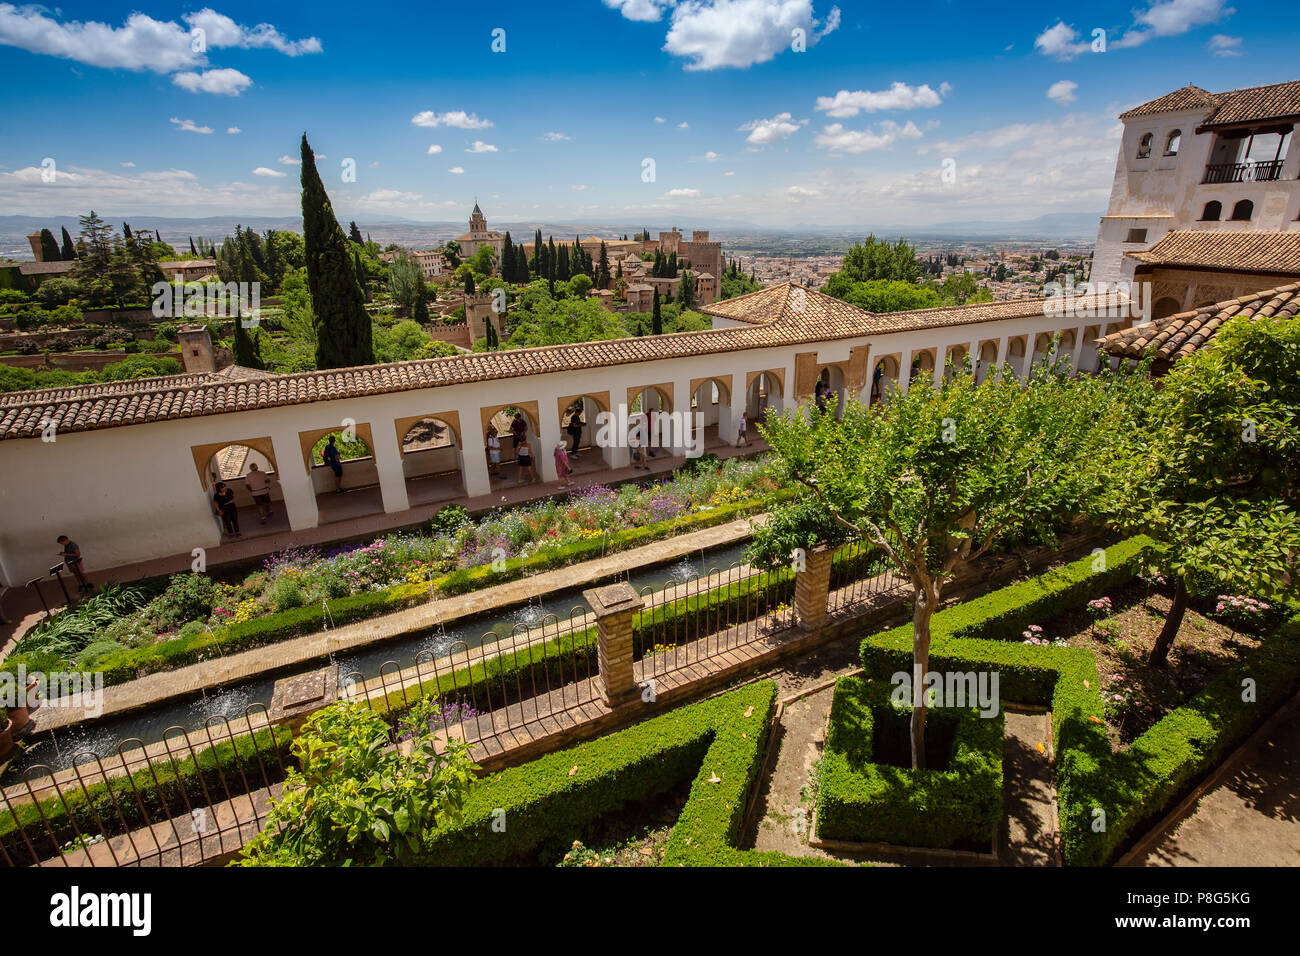 Patio de la Acequia, Generalife Palace gardens. Alhambra, UNESCO World Heritage Site. Granada City. Andalusia, Southern Spain Europe Stock Photo